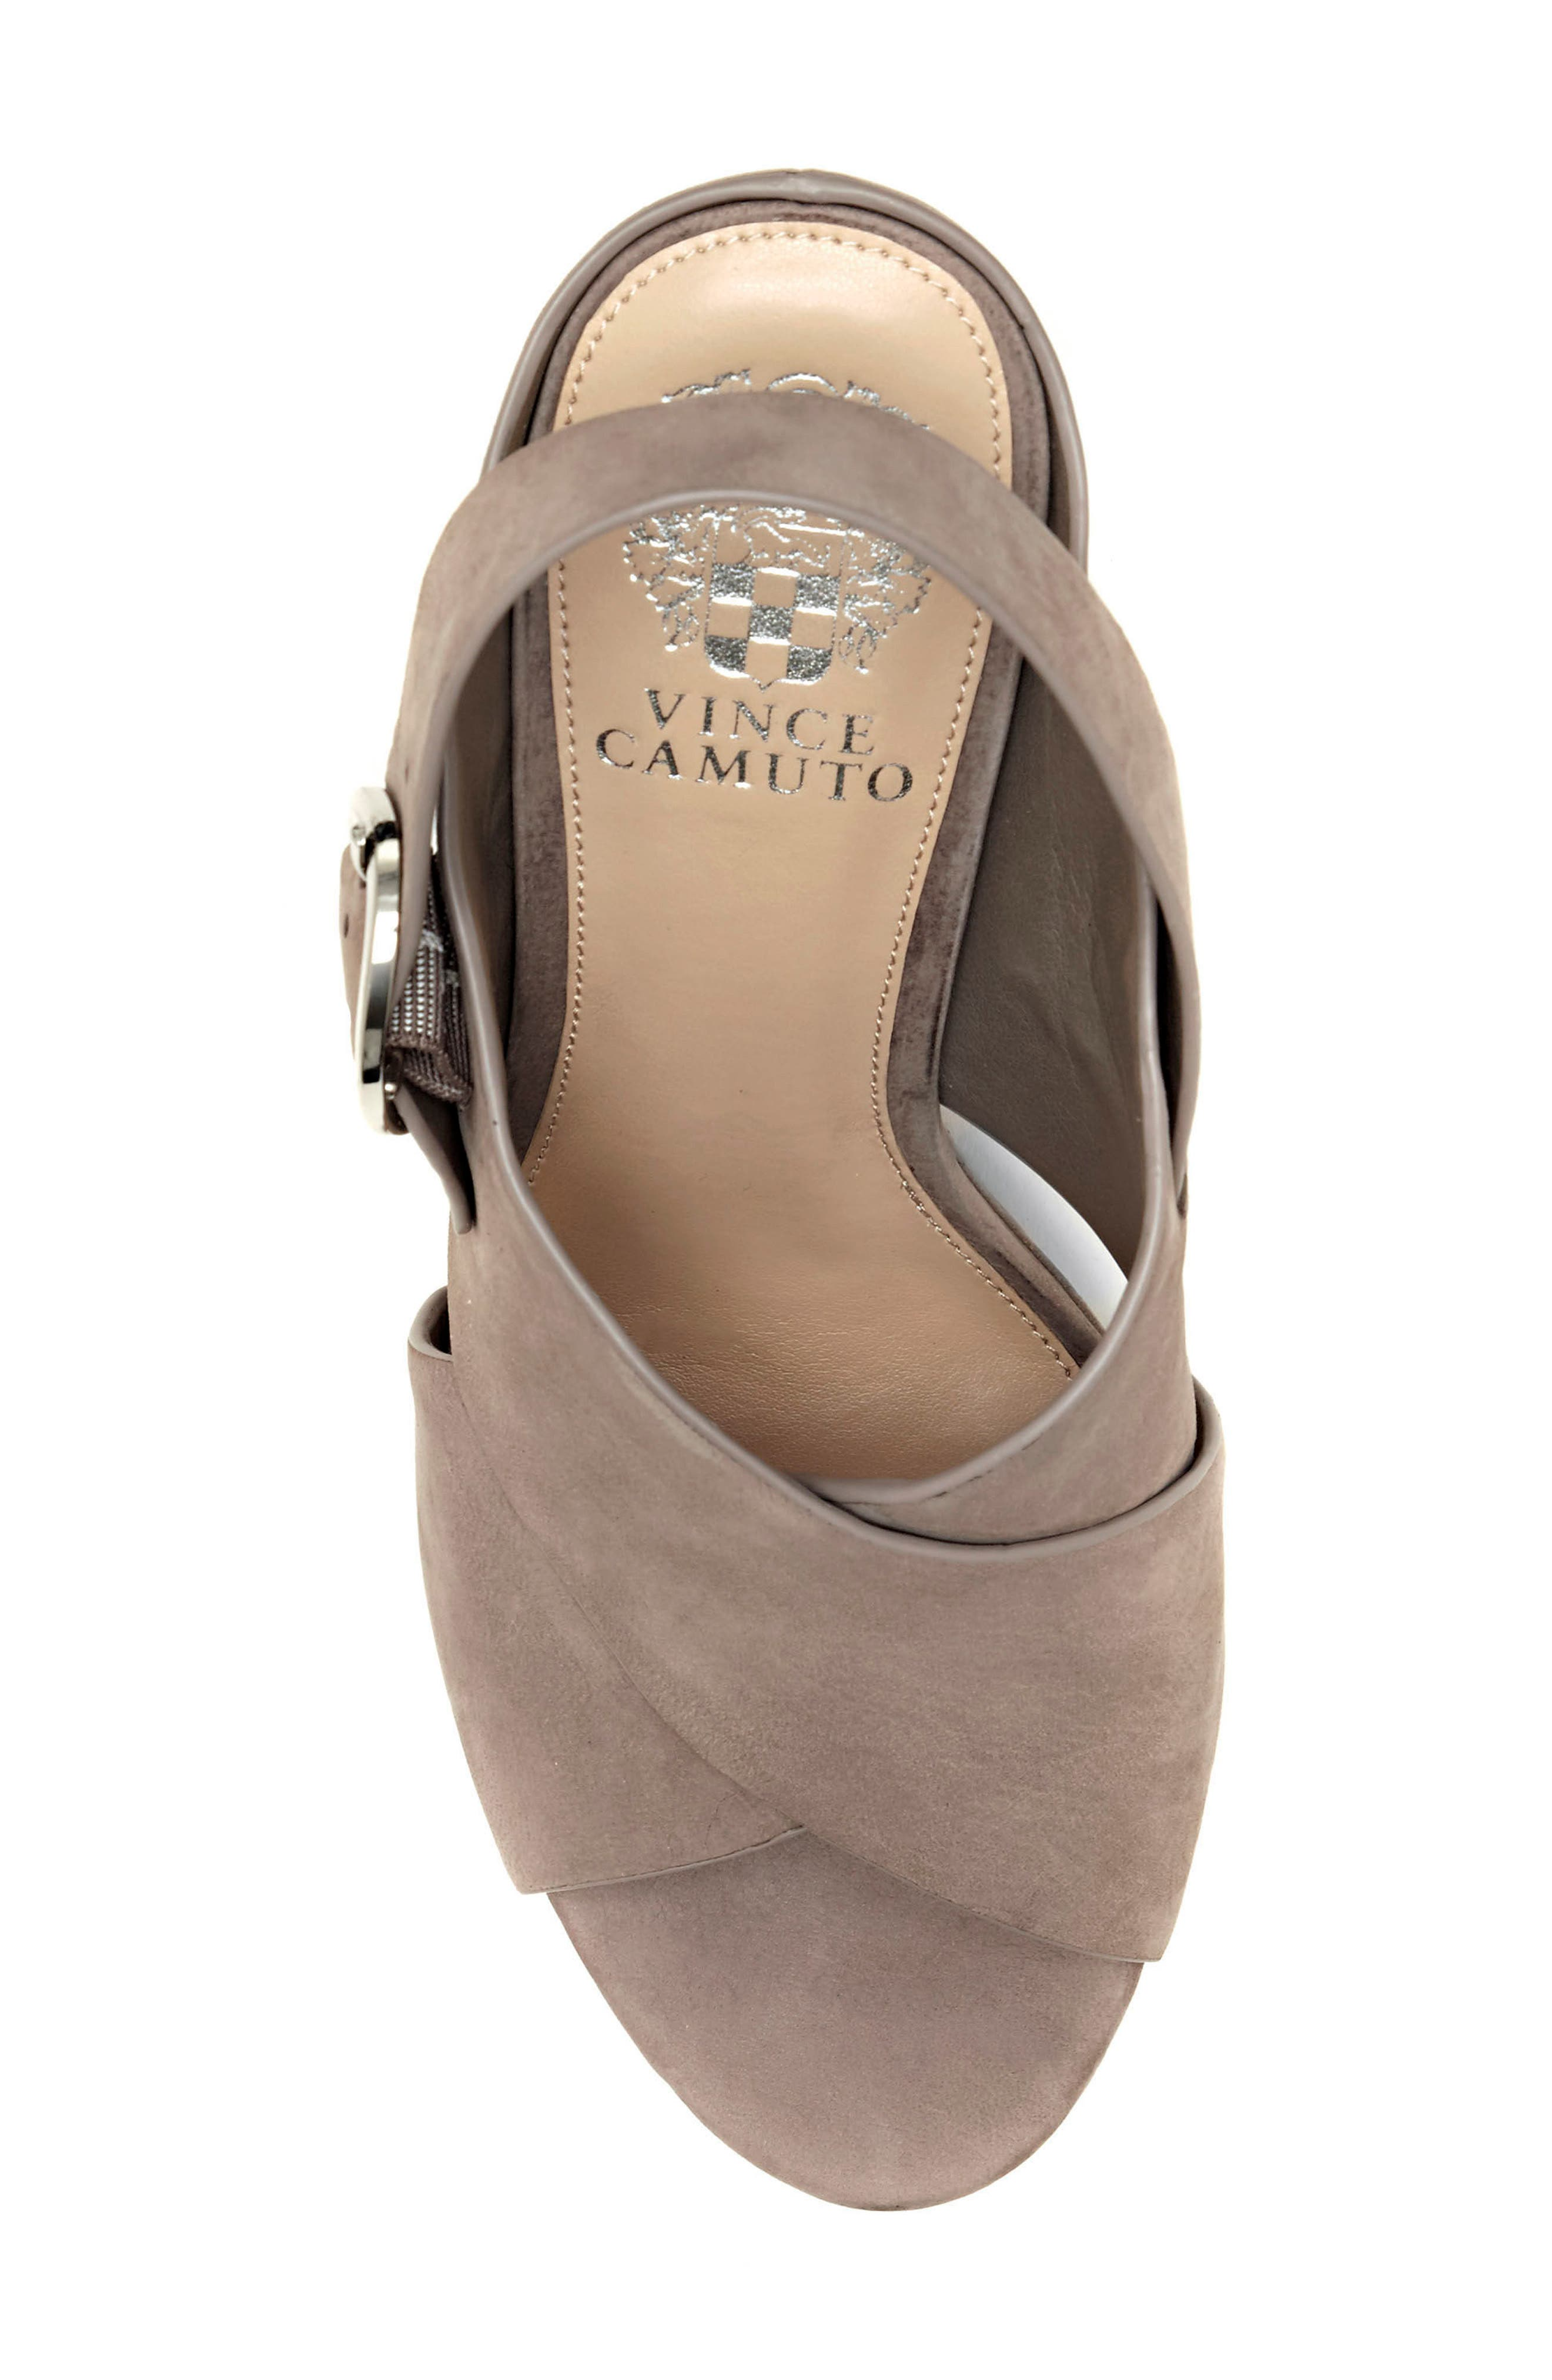 Iteena Wedge Sandal,                             Alternate thumbnail 7, color,                             Hippo Grey Leather